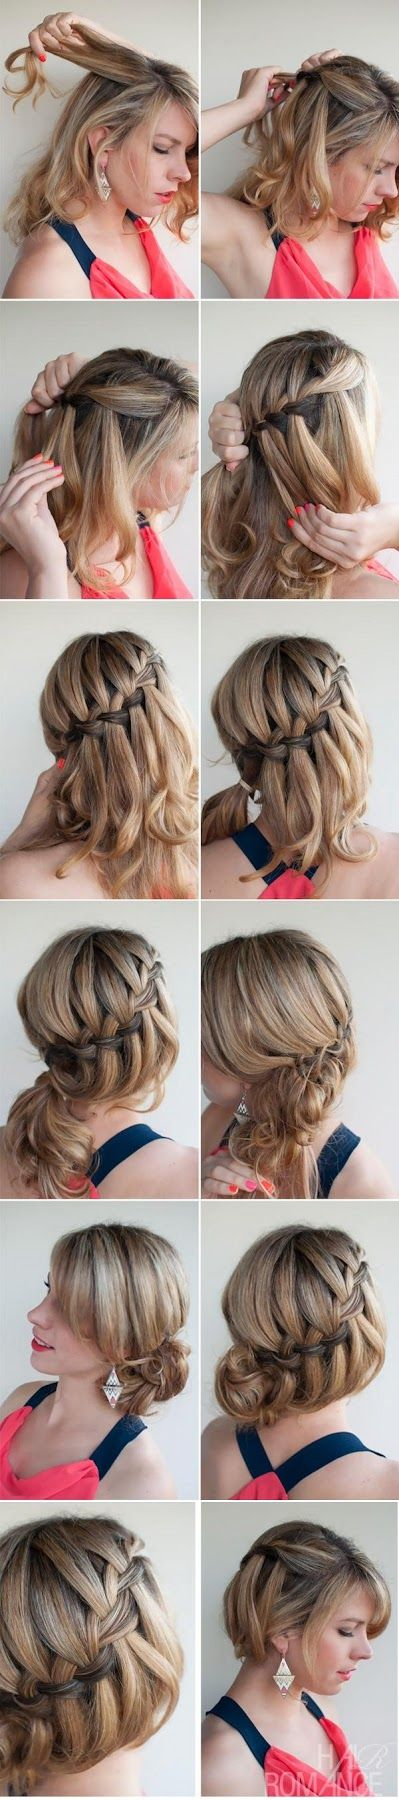 Make a Waterfall Braided Bun | hairstyles